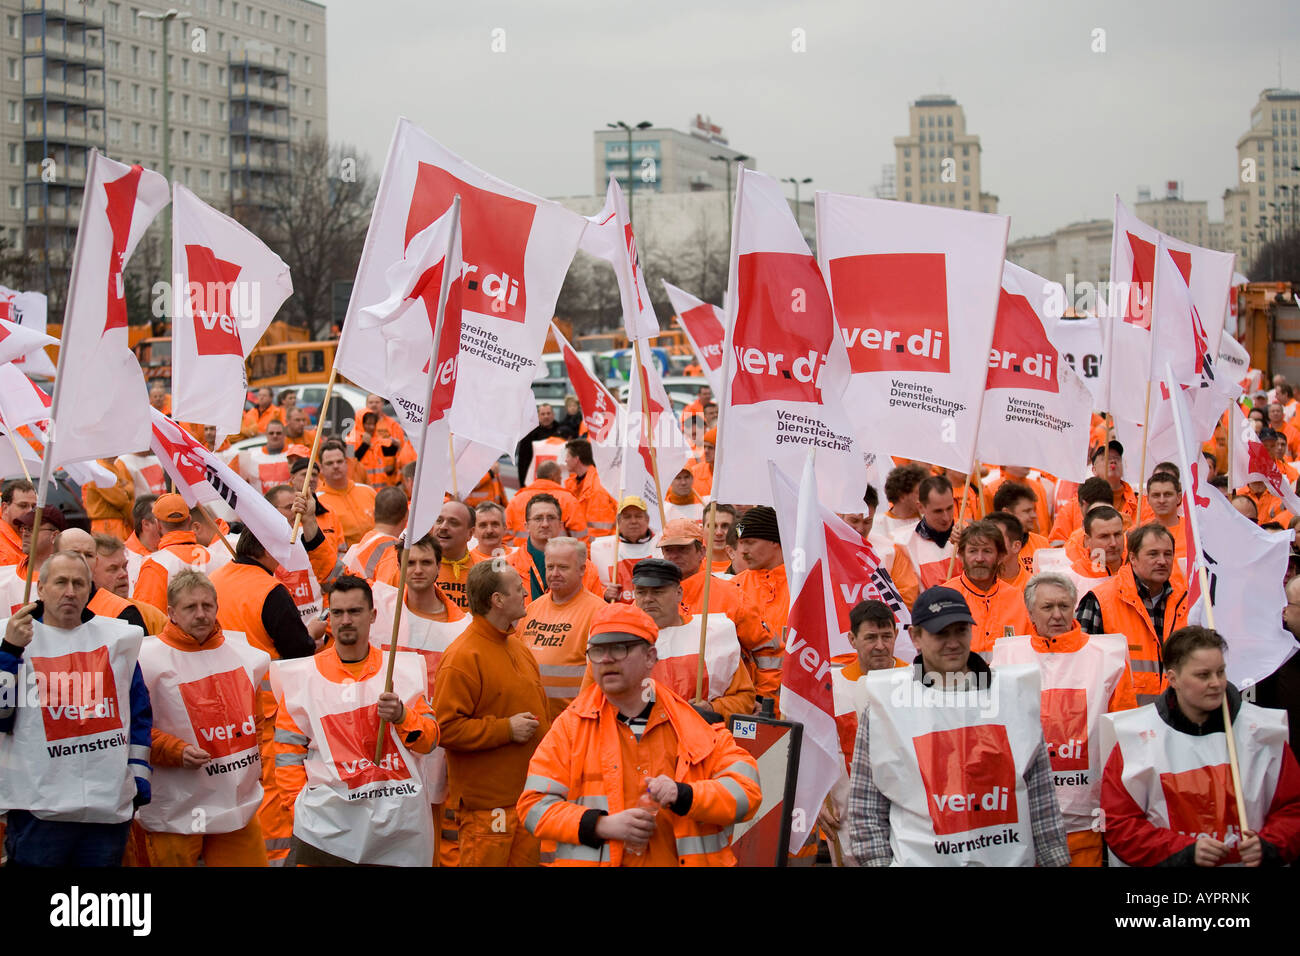 BSR and BWB water and garbage workers union walkout, warning strike demonstrations on February 22, 2008 in Berlin, - Stock Image